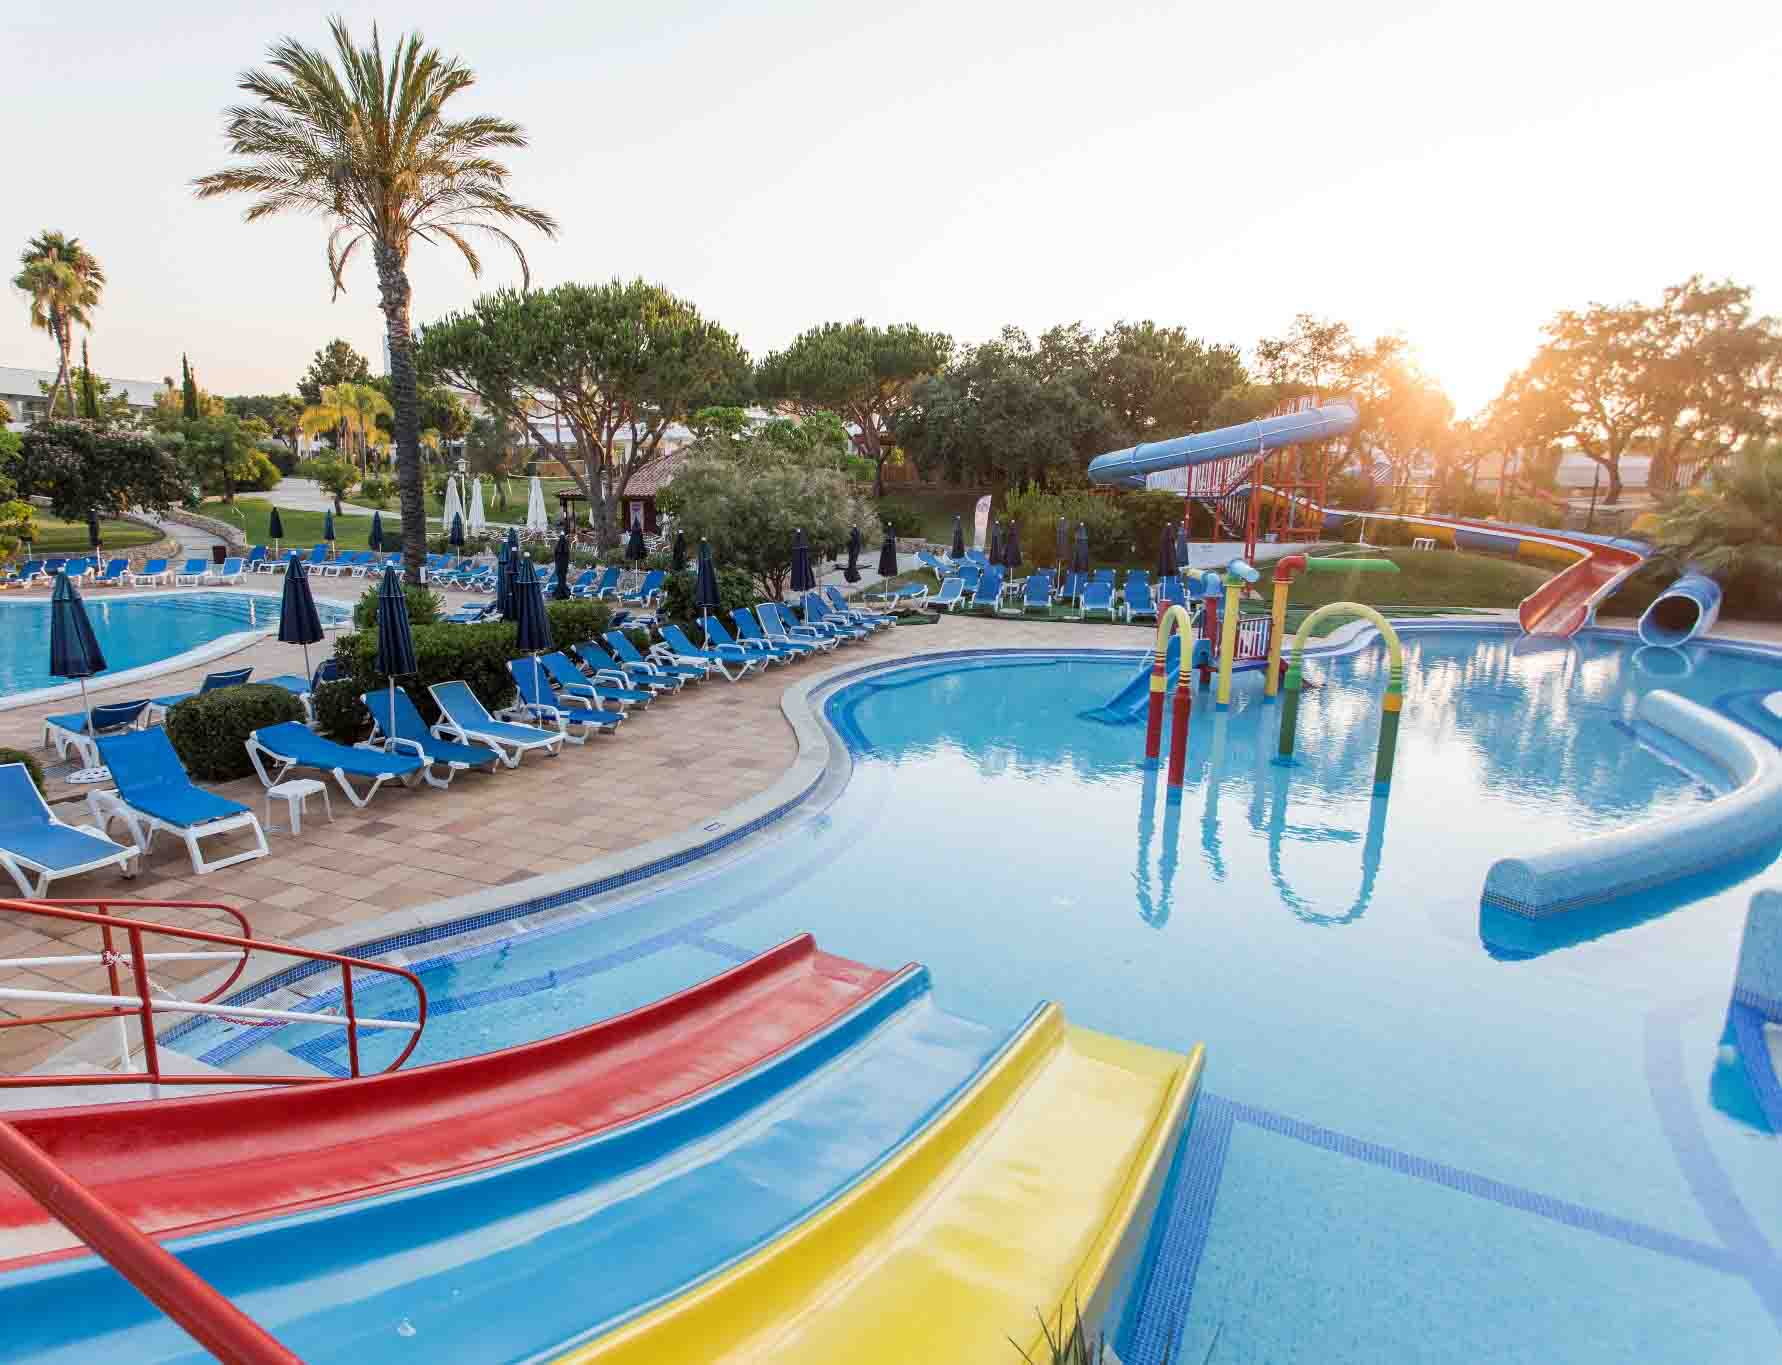 7 Hotels With Waterslides (Or Entire Waterparks) in Portugal